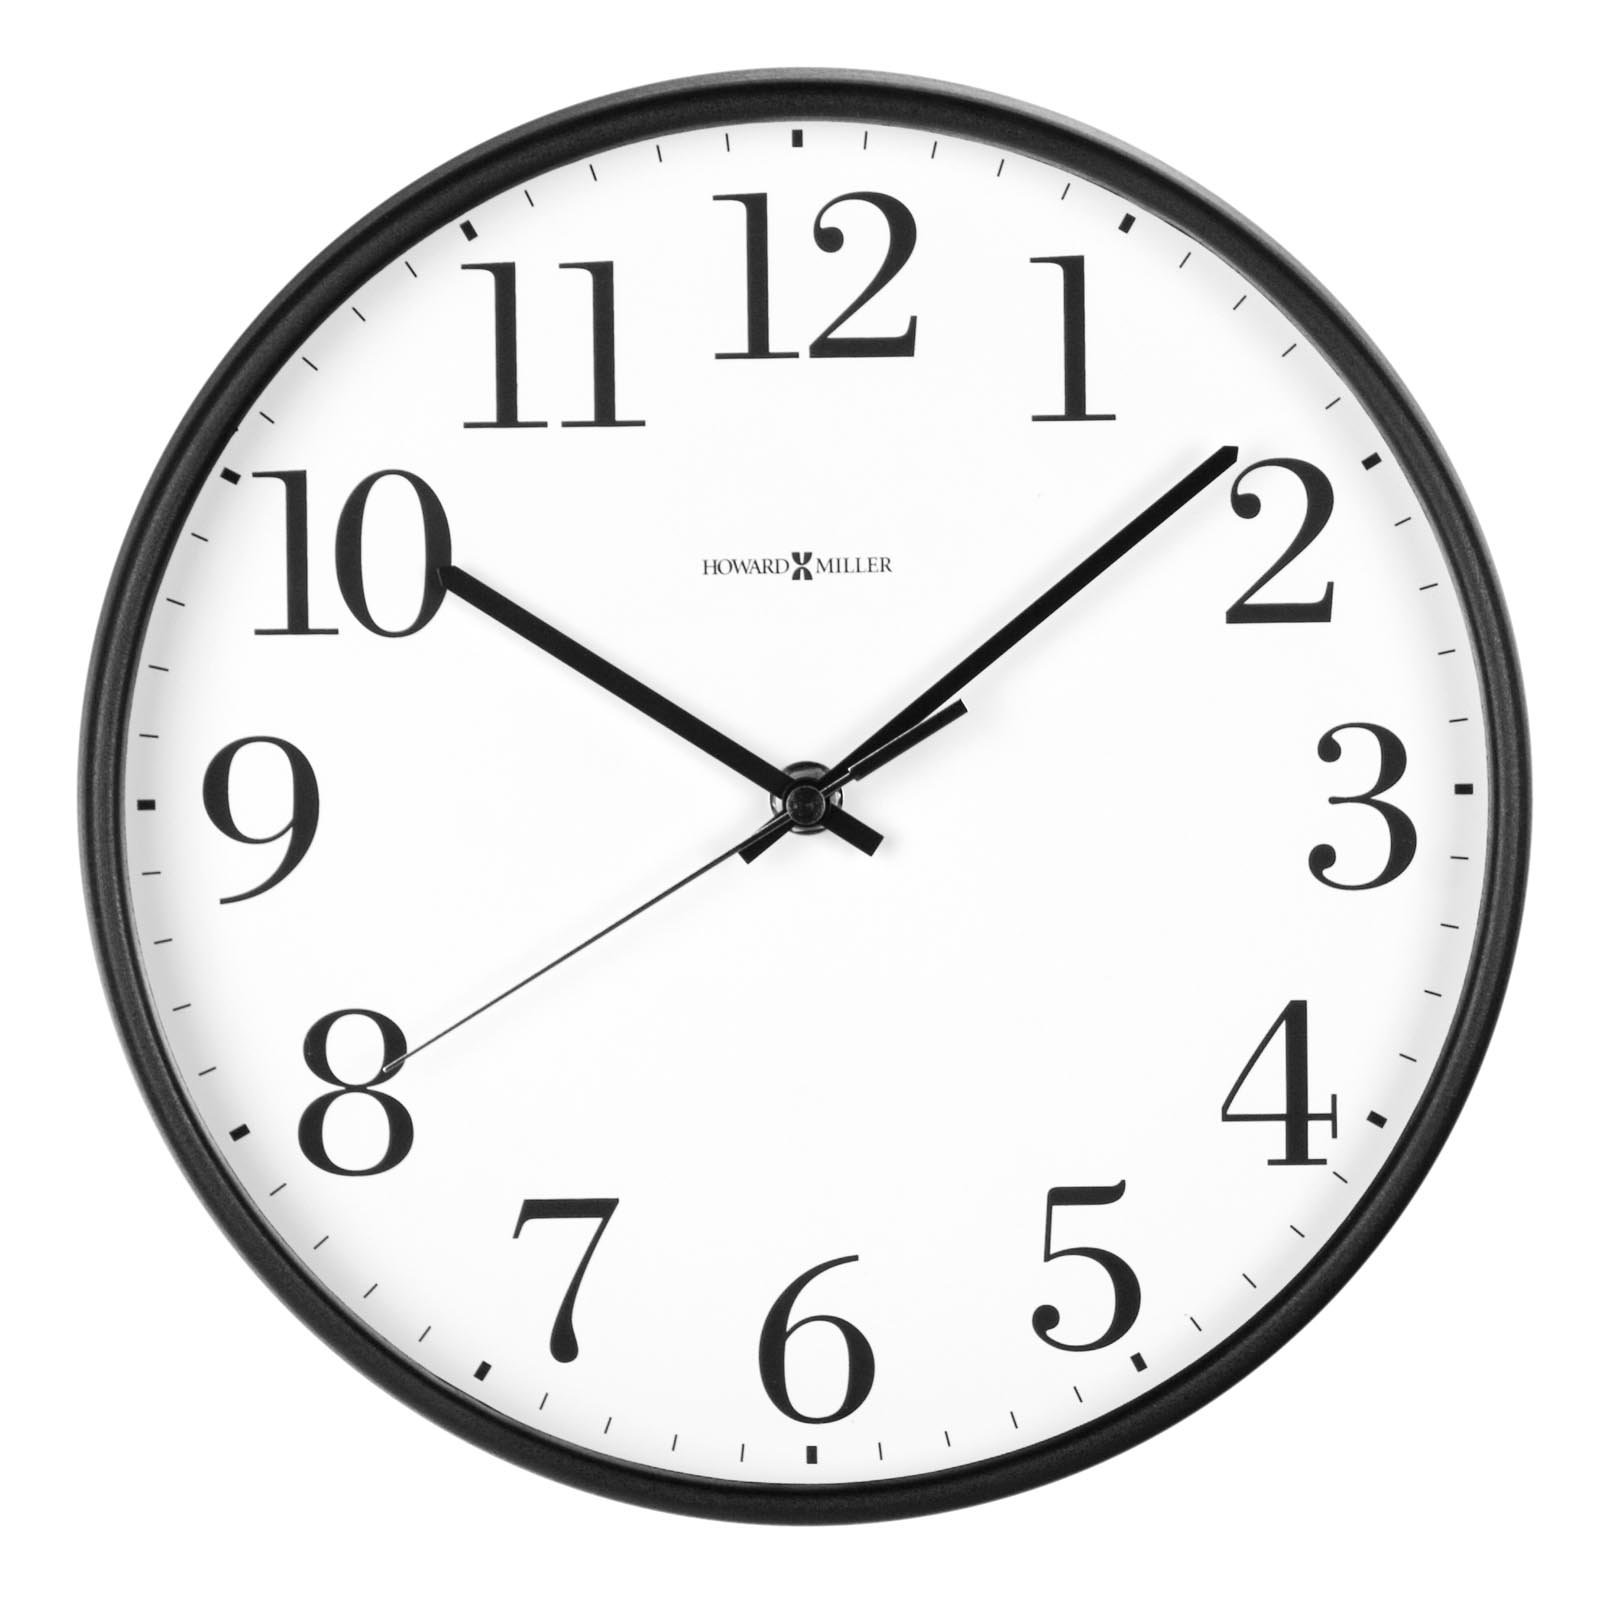 How to get current TimeStamp value in Java | Java67